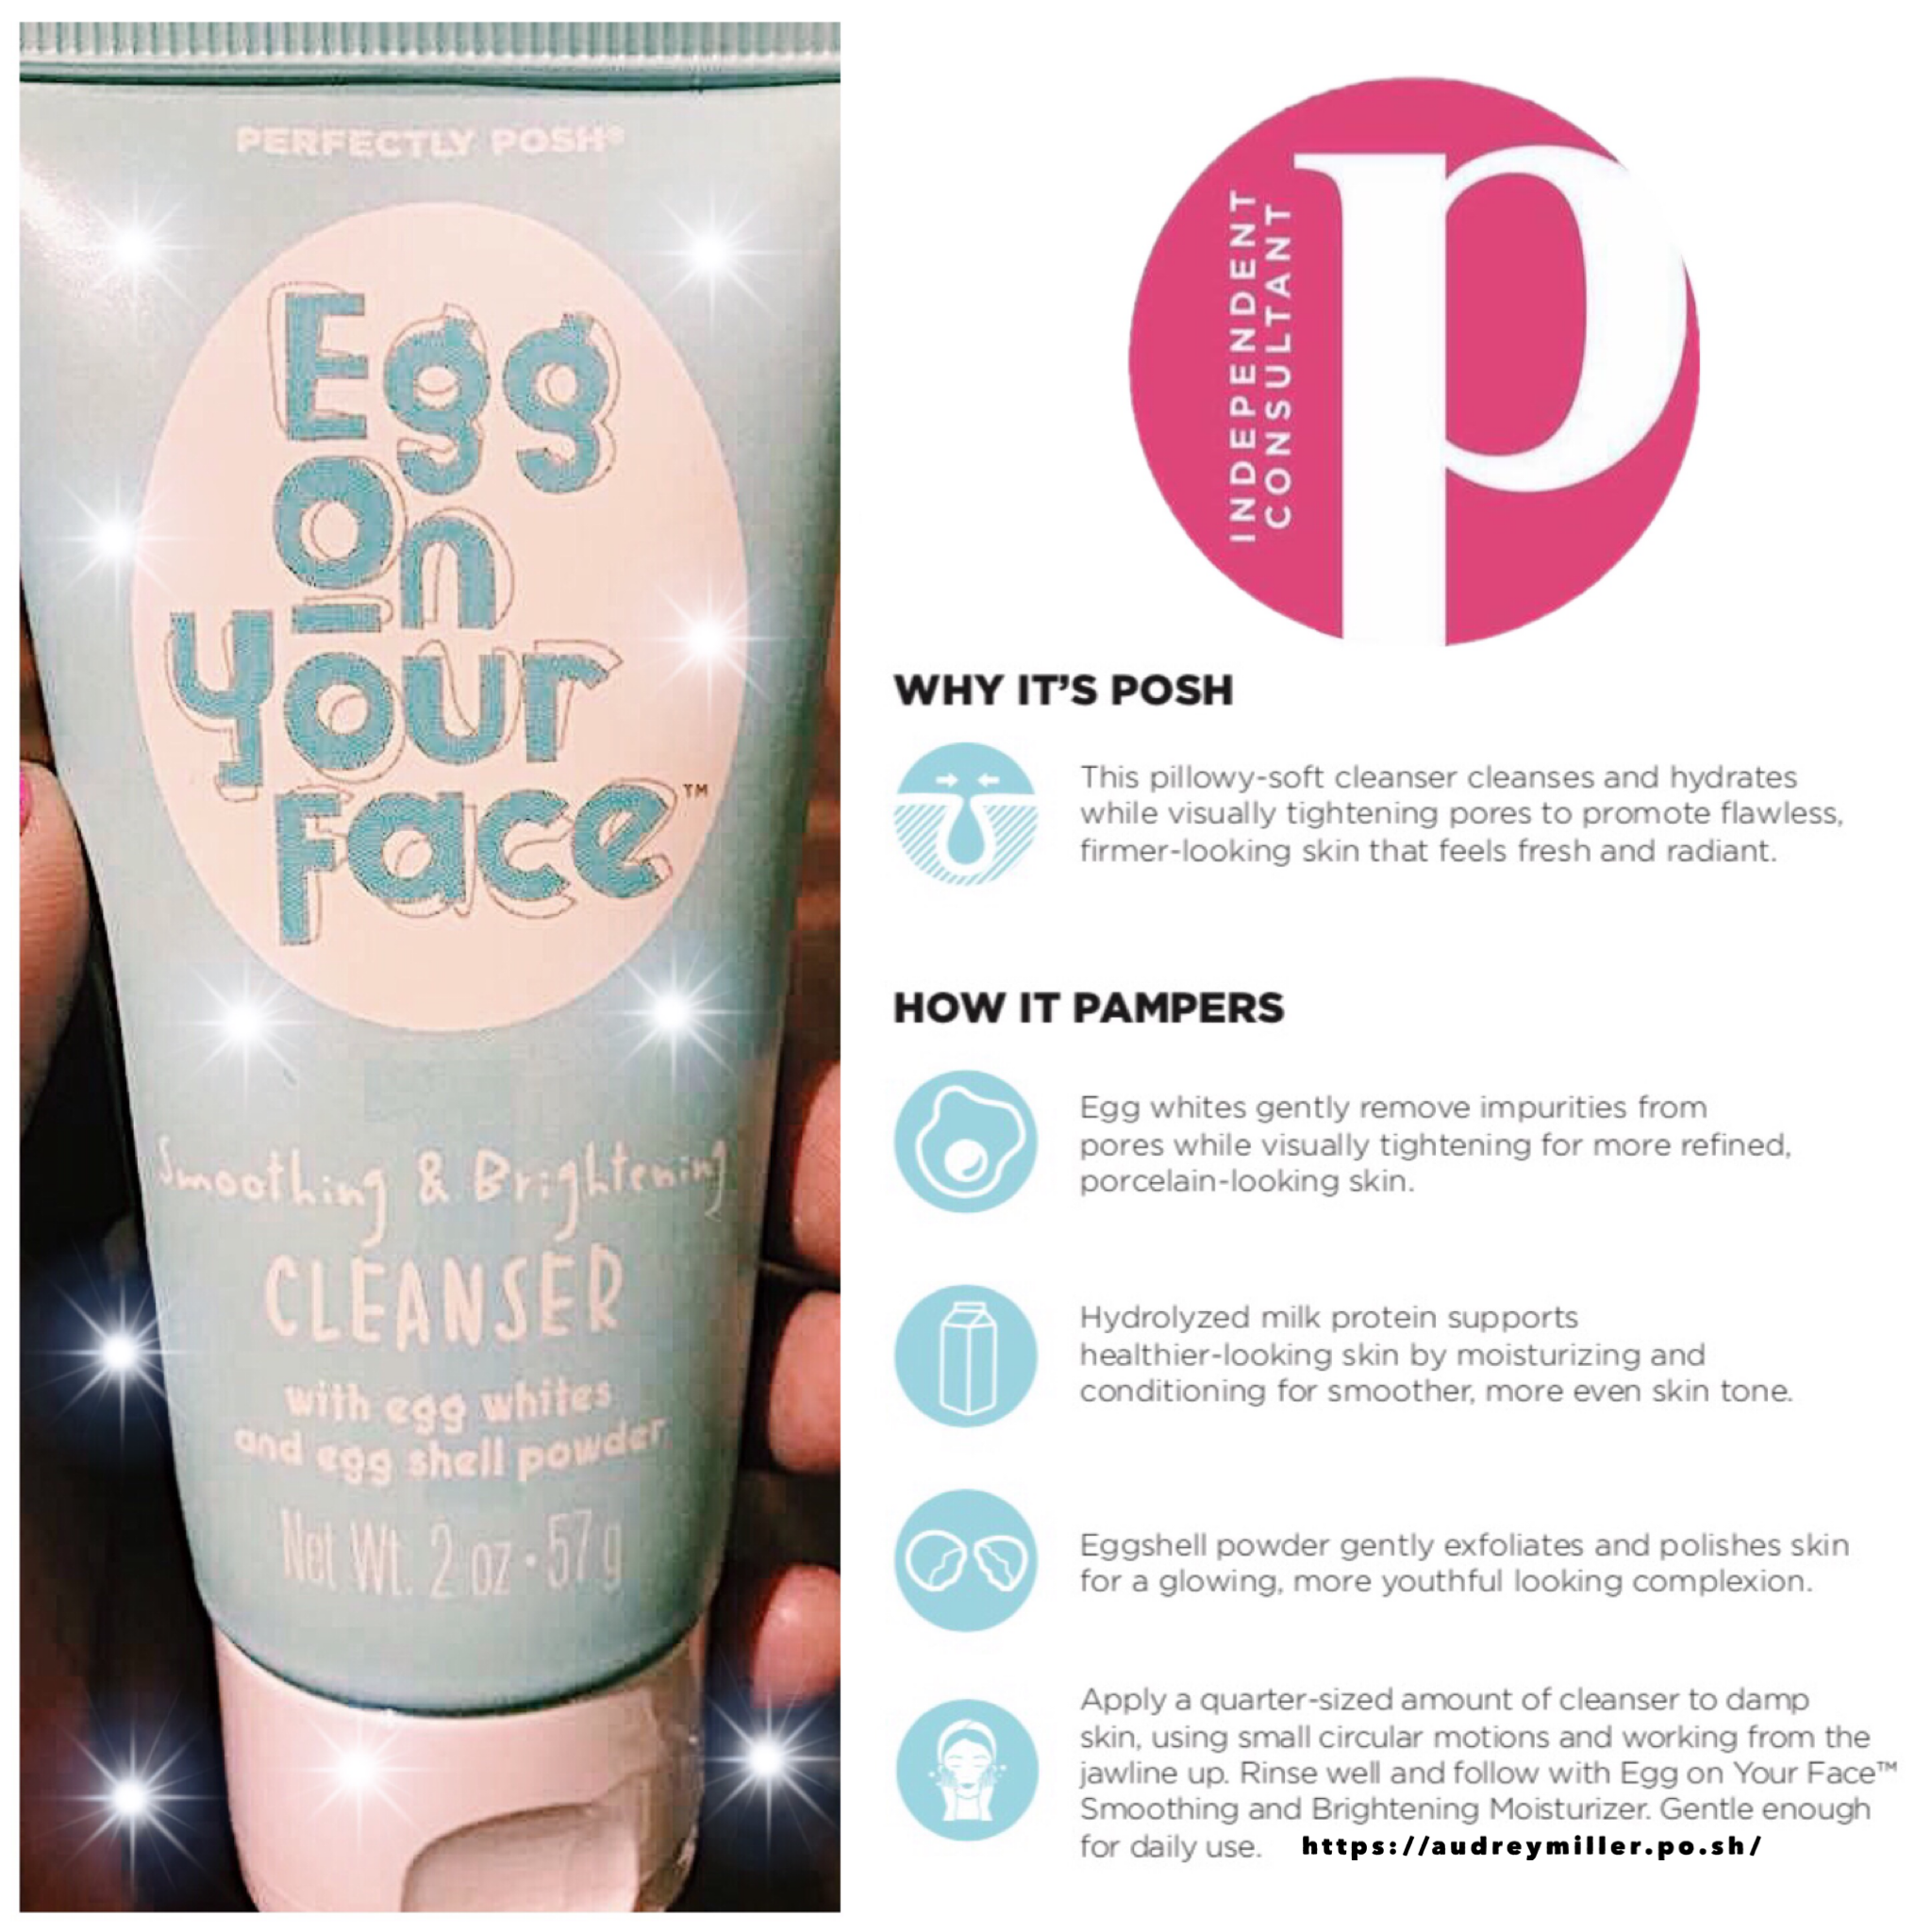 Pin By Julie On Posh With Juliem Face Firming Perfectly Posh Face Hydration